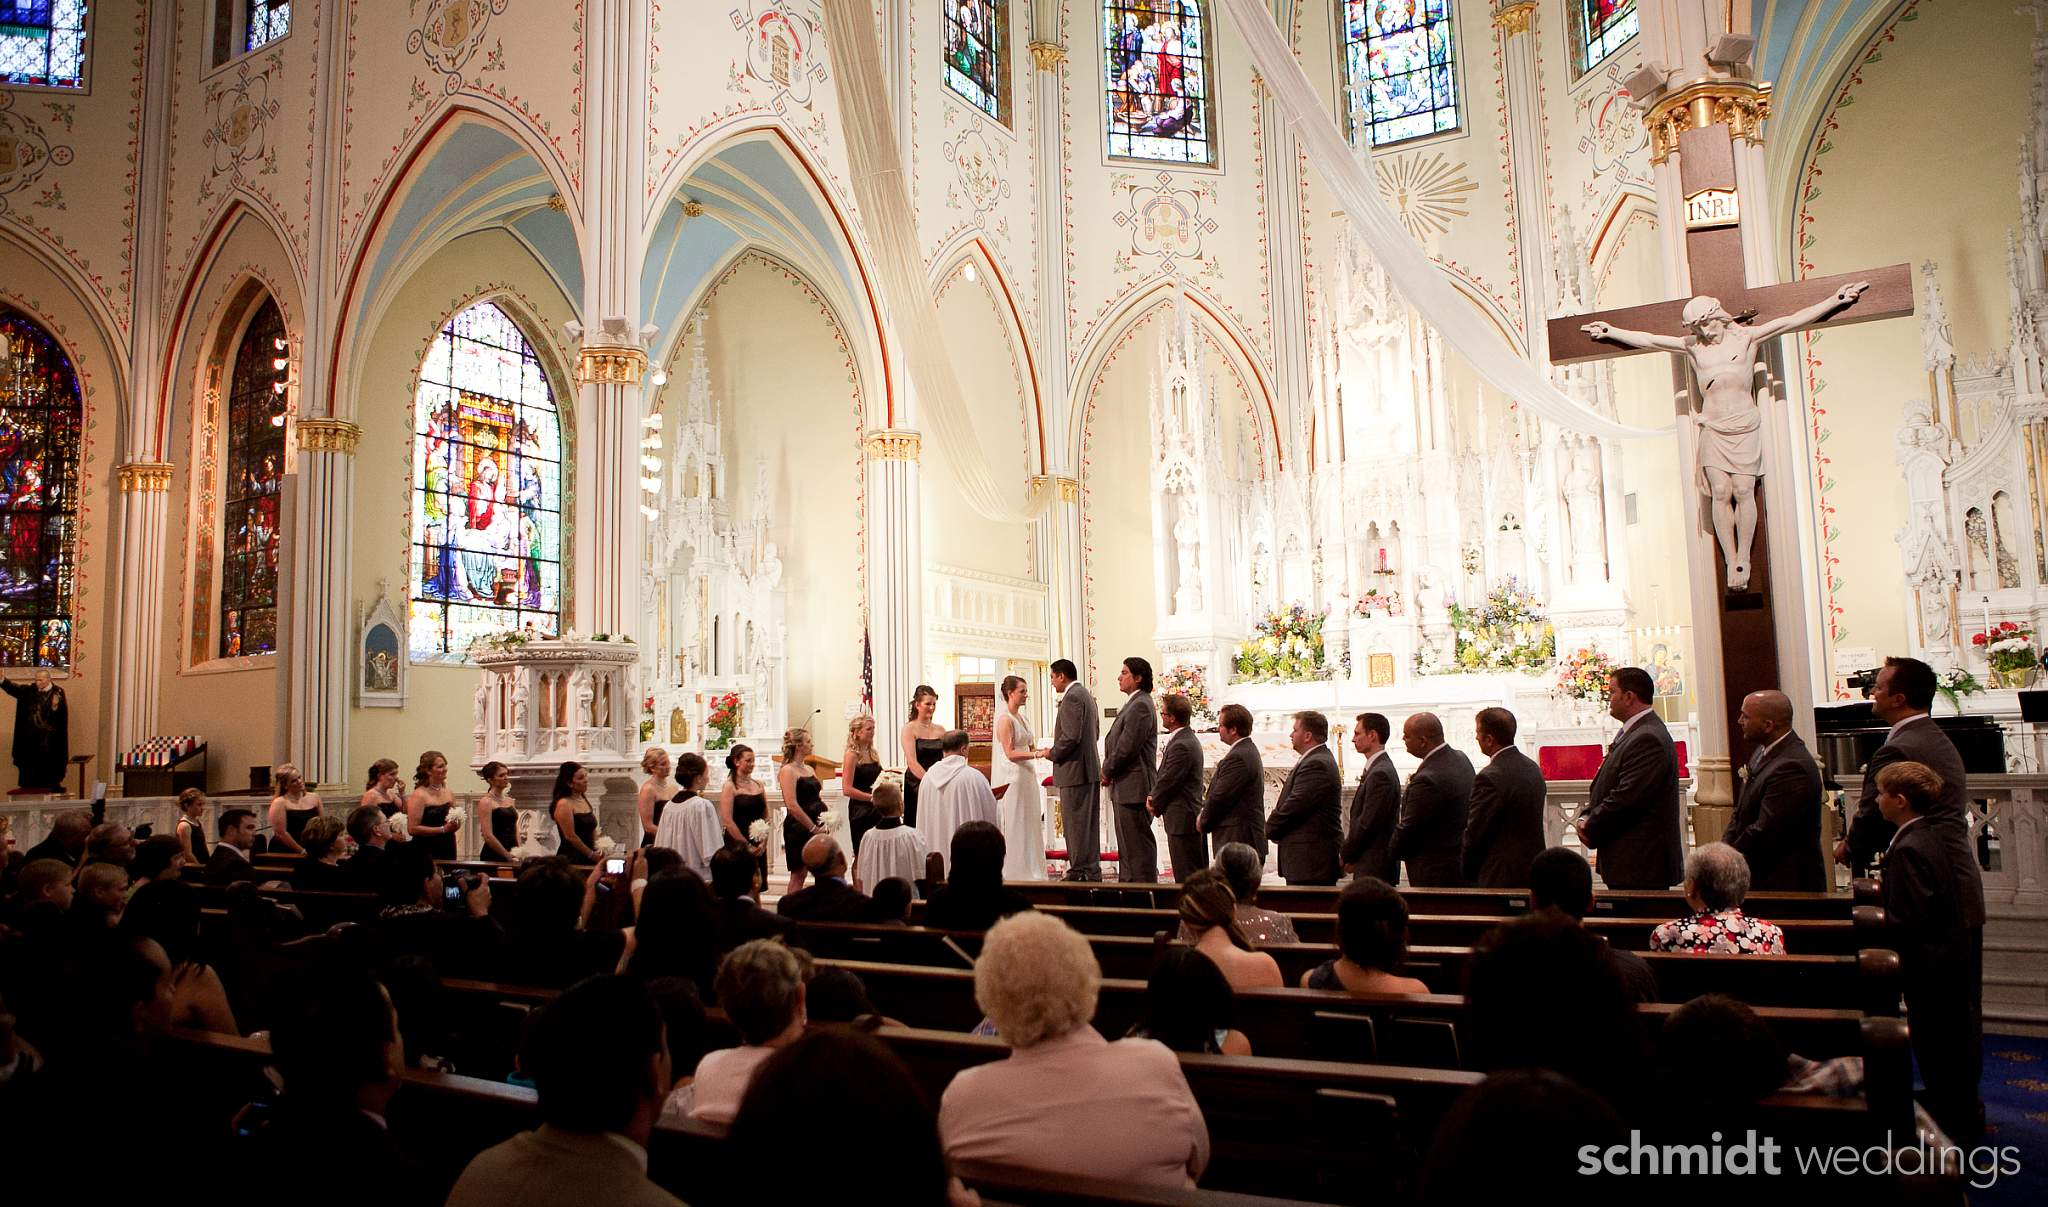 Catholic church wedding picture ideas TS Photo